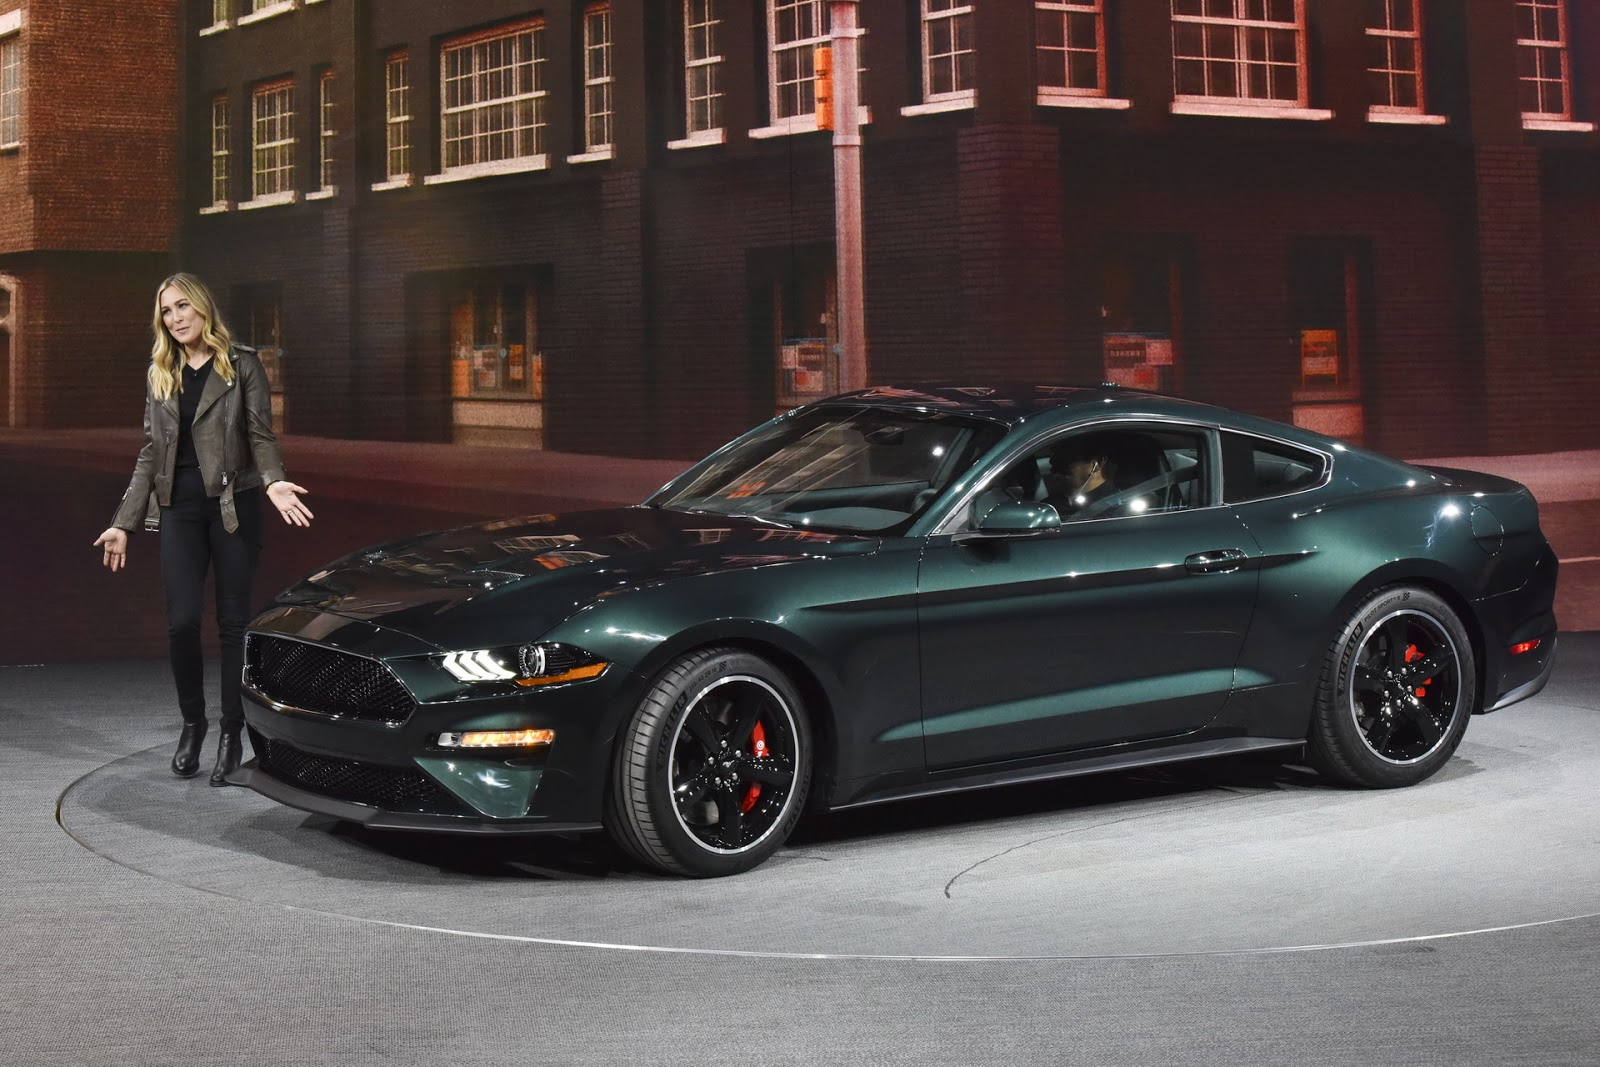 2019 ford mustang bullitt unveiled with 475hp and signature exhaust carscoops. Black Bedroom Furniture Sets. Home Design Ideas